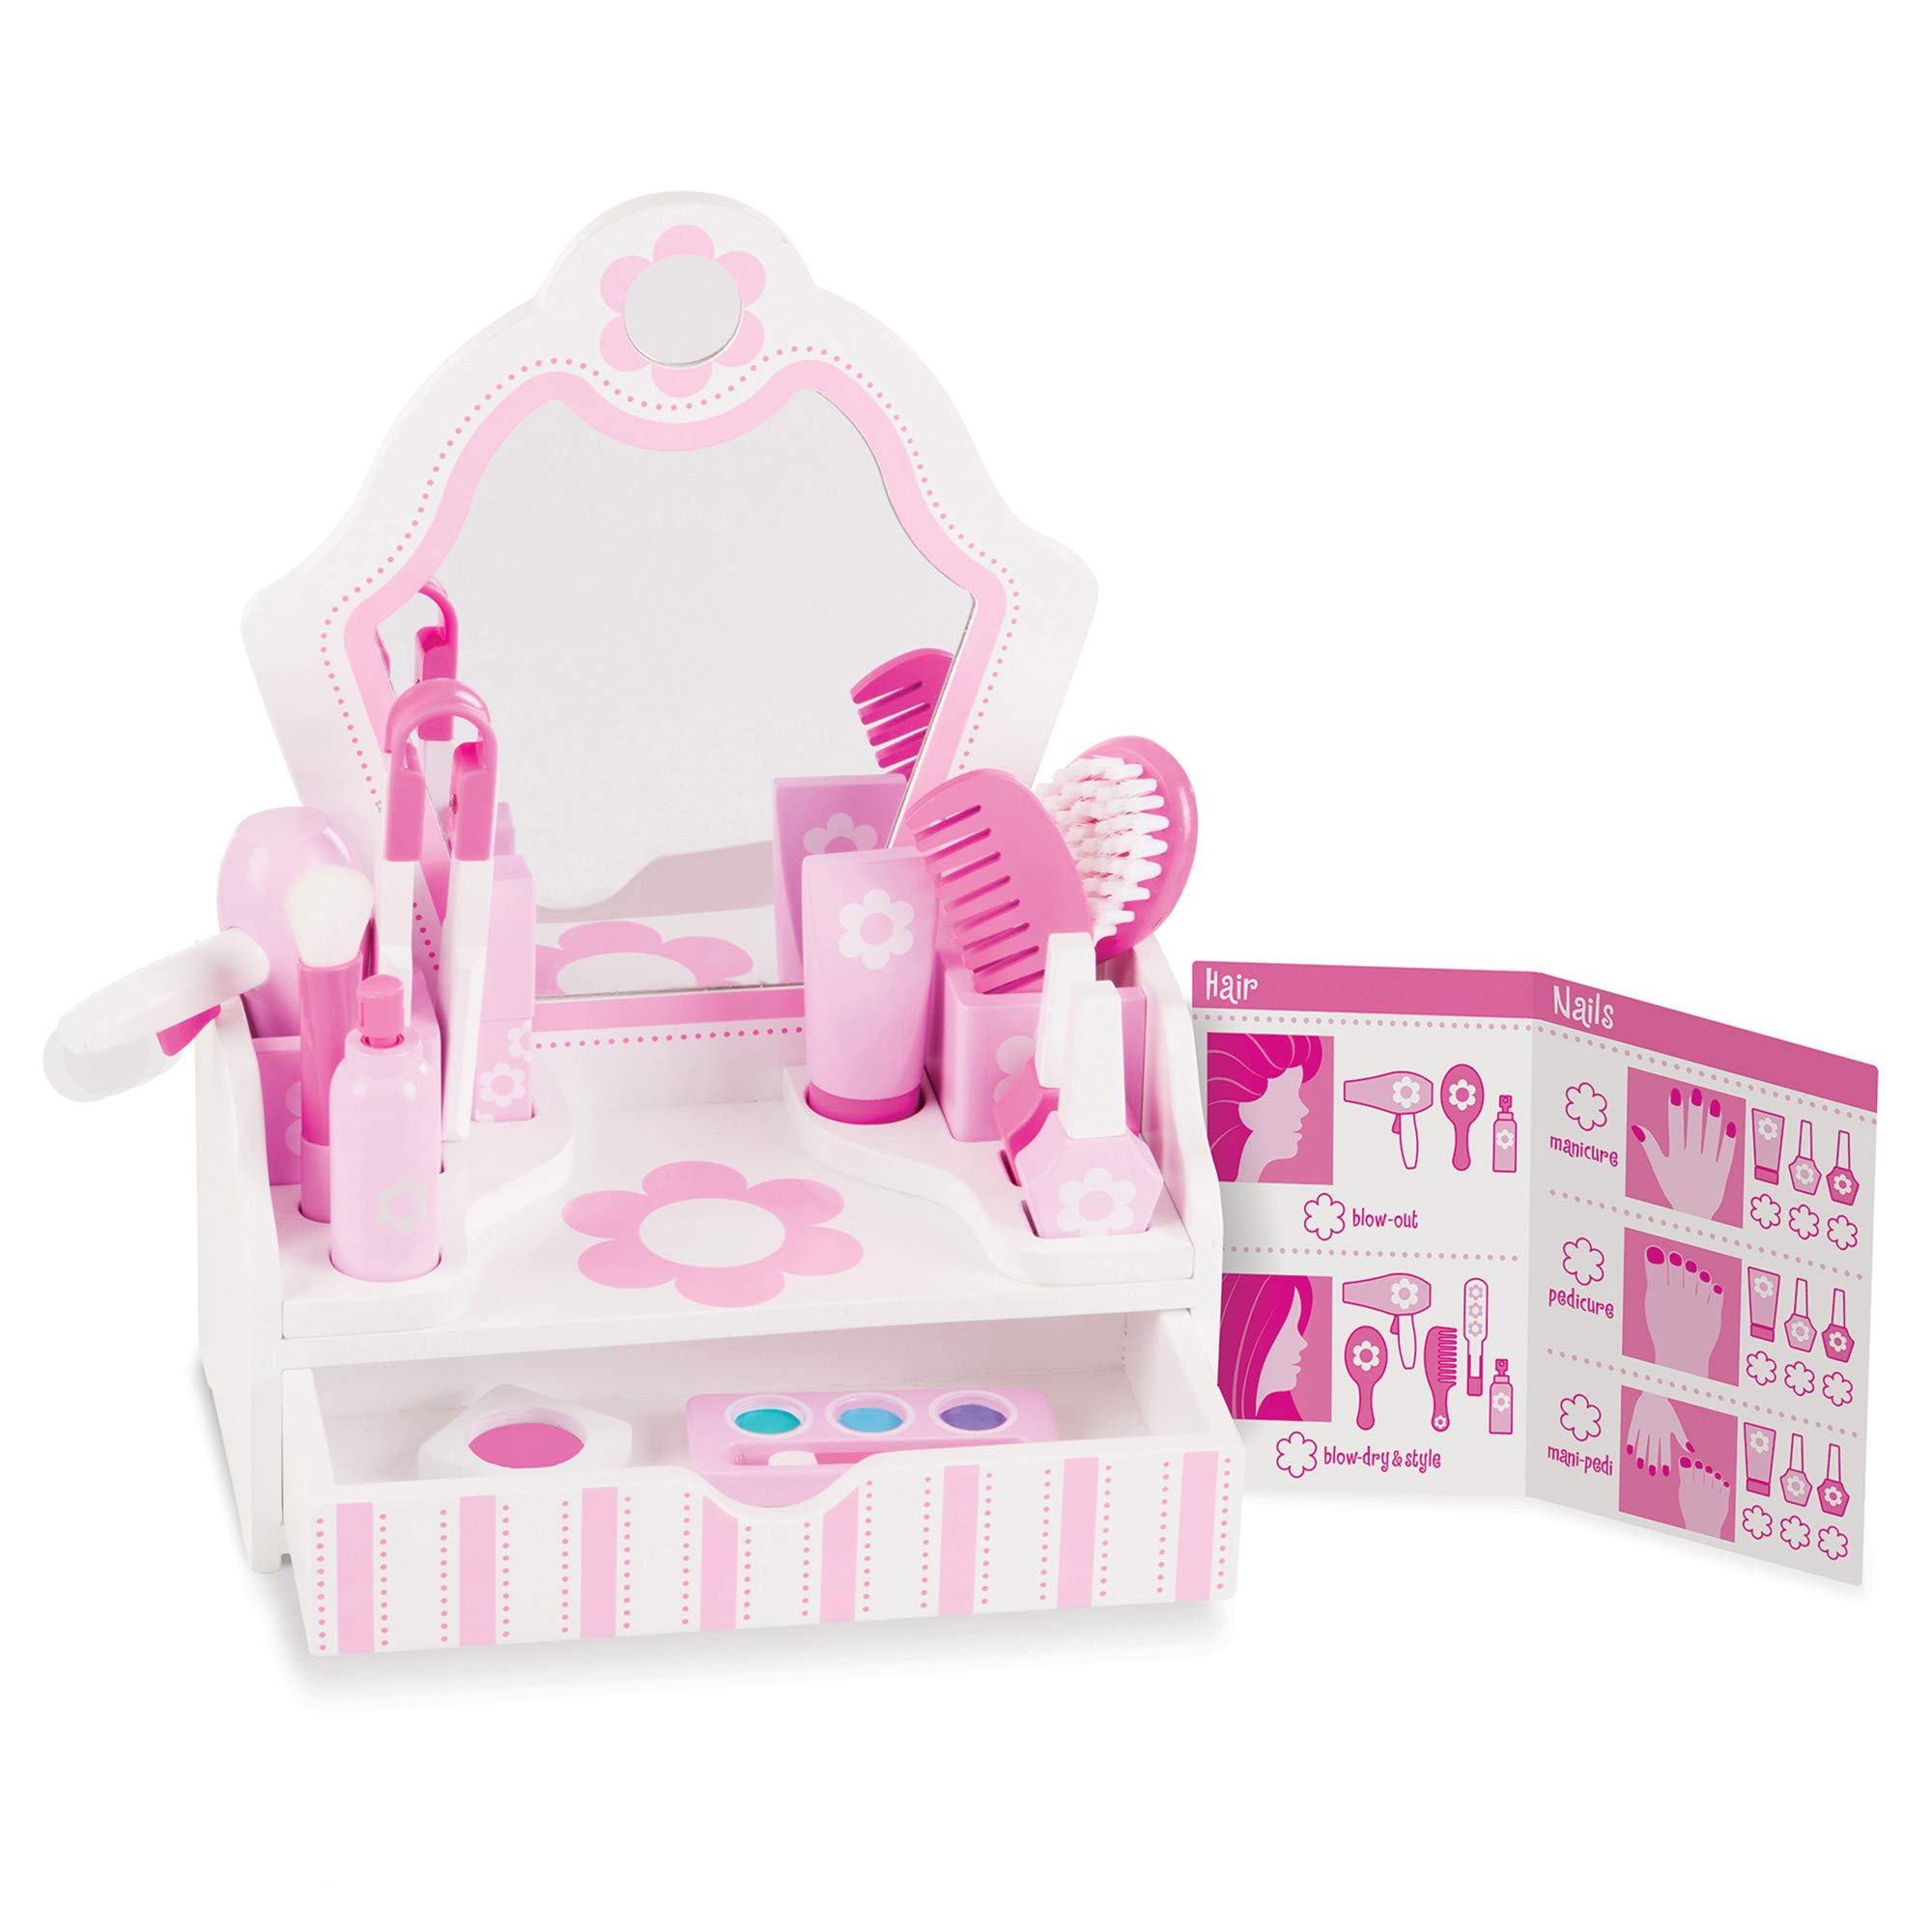 Melissa & Doug Wooden Beauty Salon Play Set (Role Play, Vanity & Accessories, 18 Pieces, 15.5'' H x 12'' W x 6'' L, Great Gift for Girls and Boys - Best for 3, 4, 5 Year Olds and Up) by Melissa & Doug